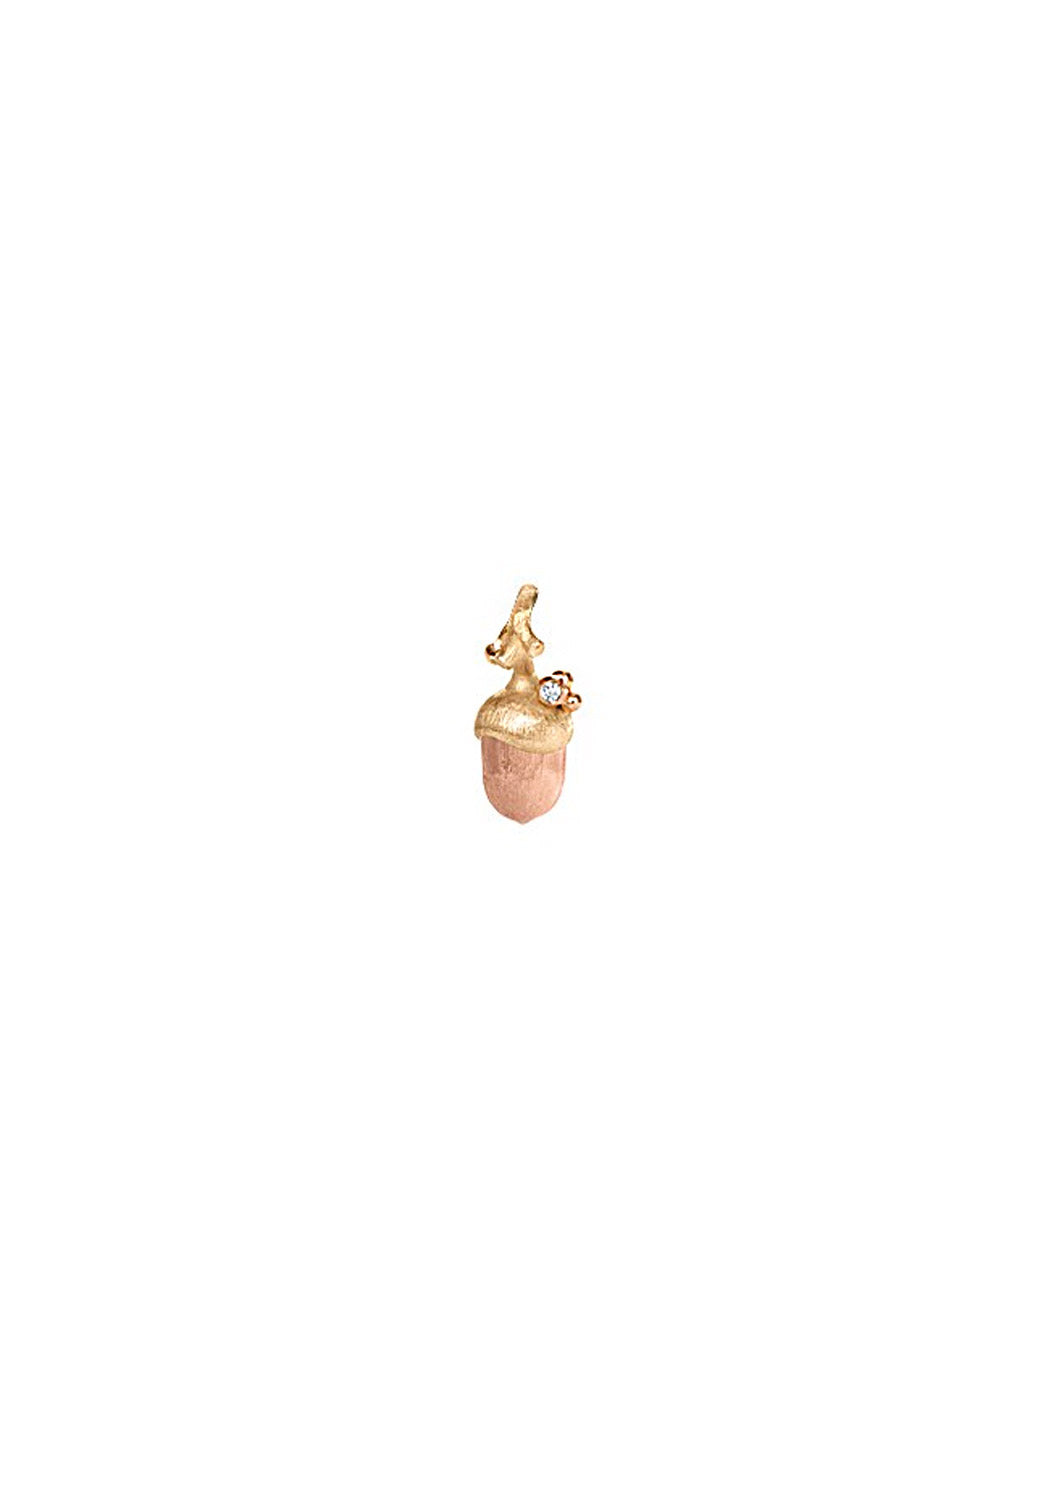 OLE LYNGGAARD Acorn Forest Pendant_Small